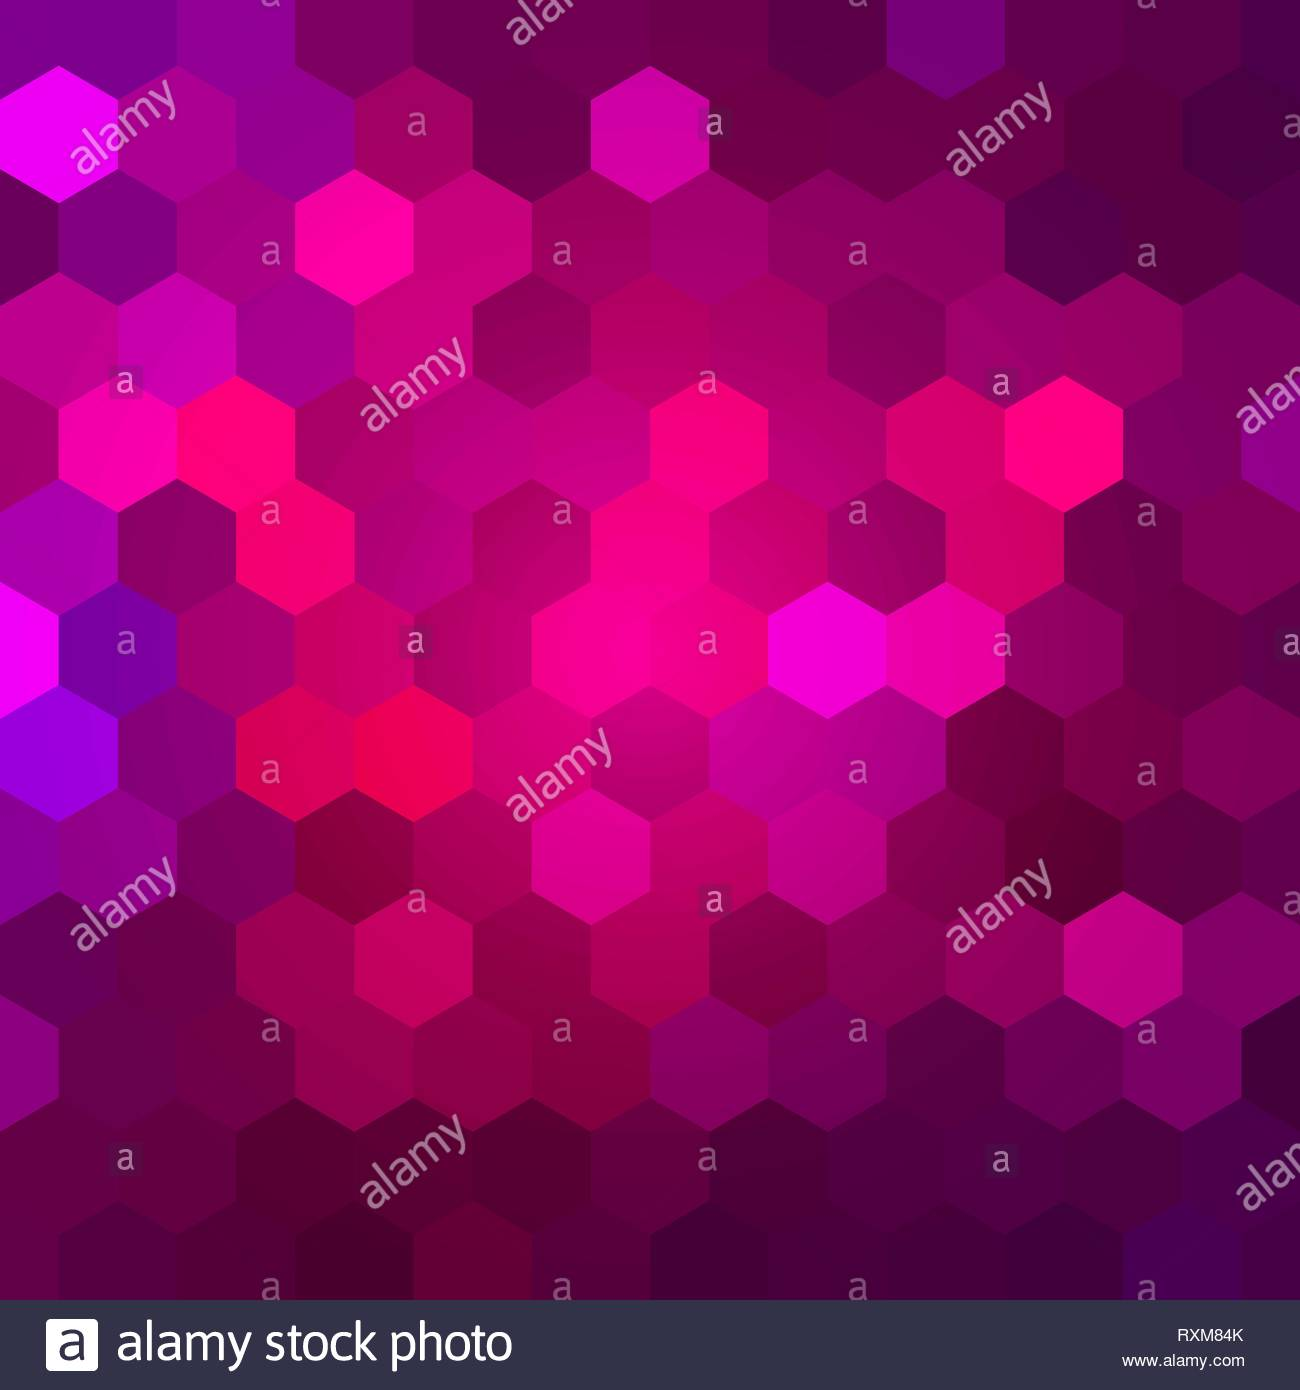 Brightly Colored Pink and Magenta Mosaic Design - Stock Image